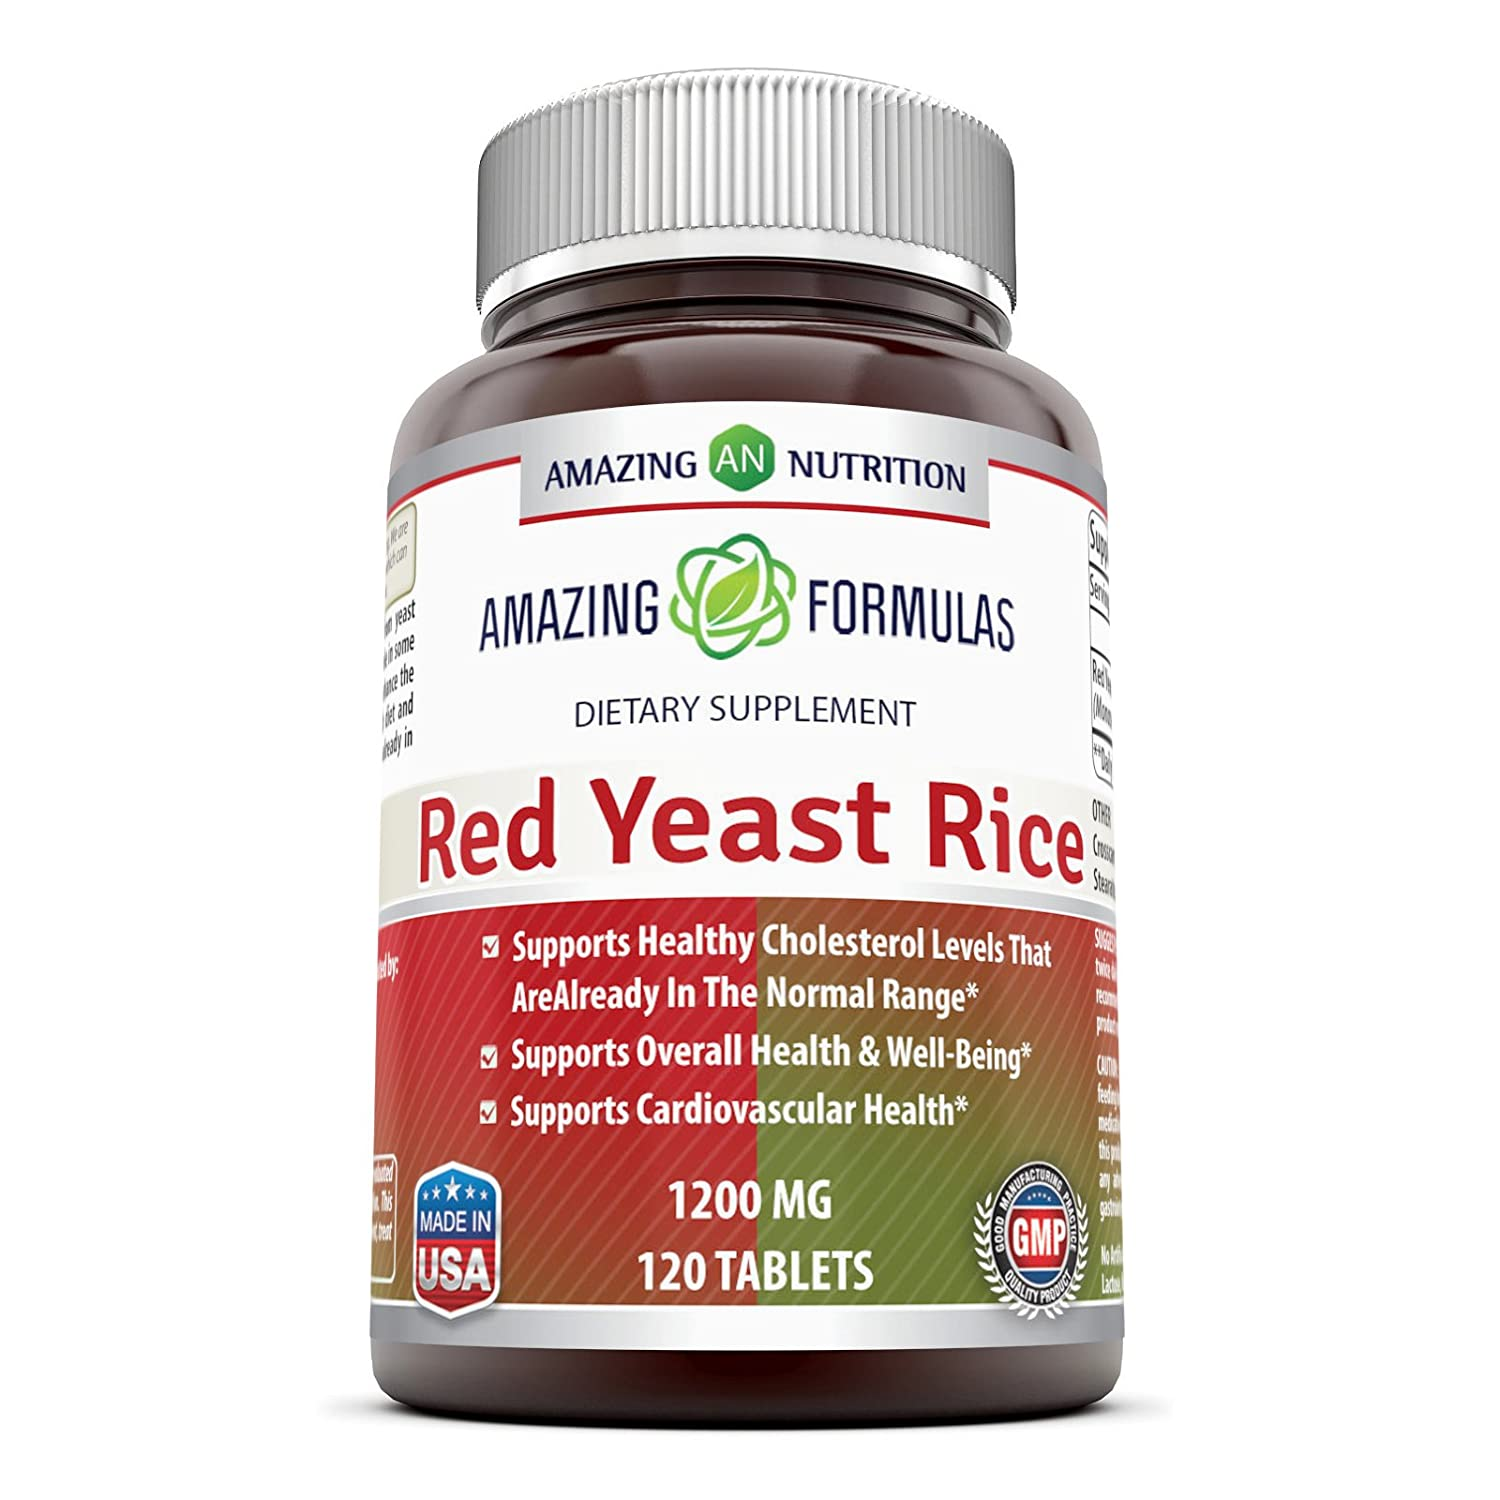 Amazing Formulas Red Yeast Rice Dietary Supplement - 1200mg of Best Quality Red Yeast Rice Powder Per Serving – Supports Cardiovascular Health- 120 Tablets Per Bottle B018WFTIY8